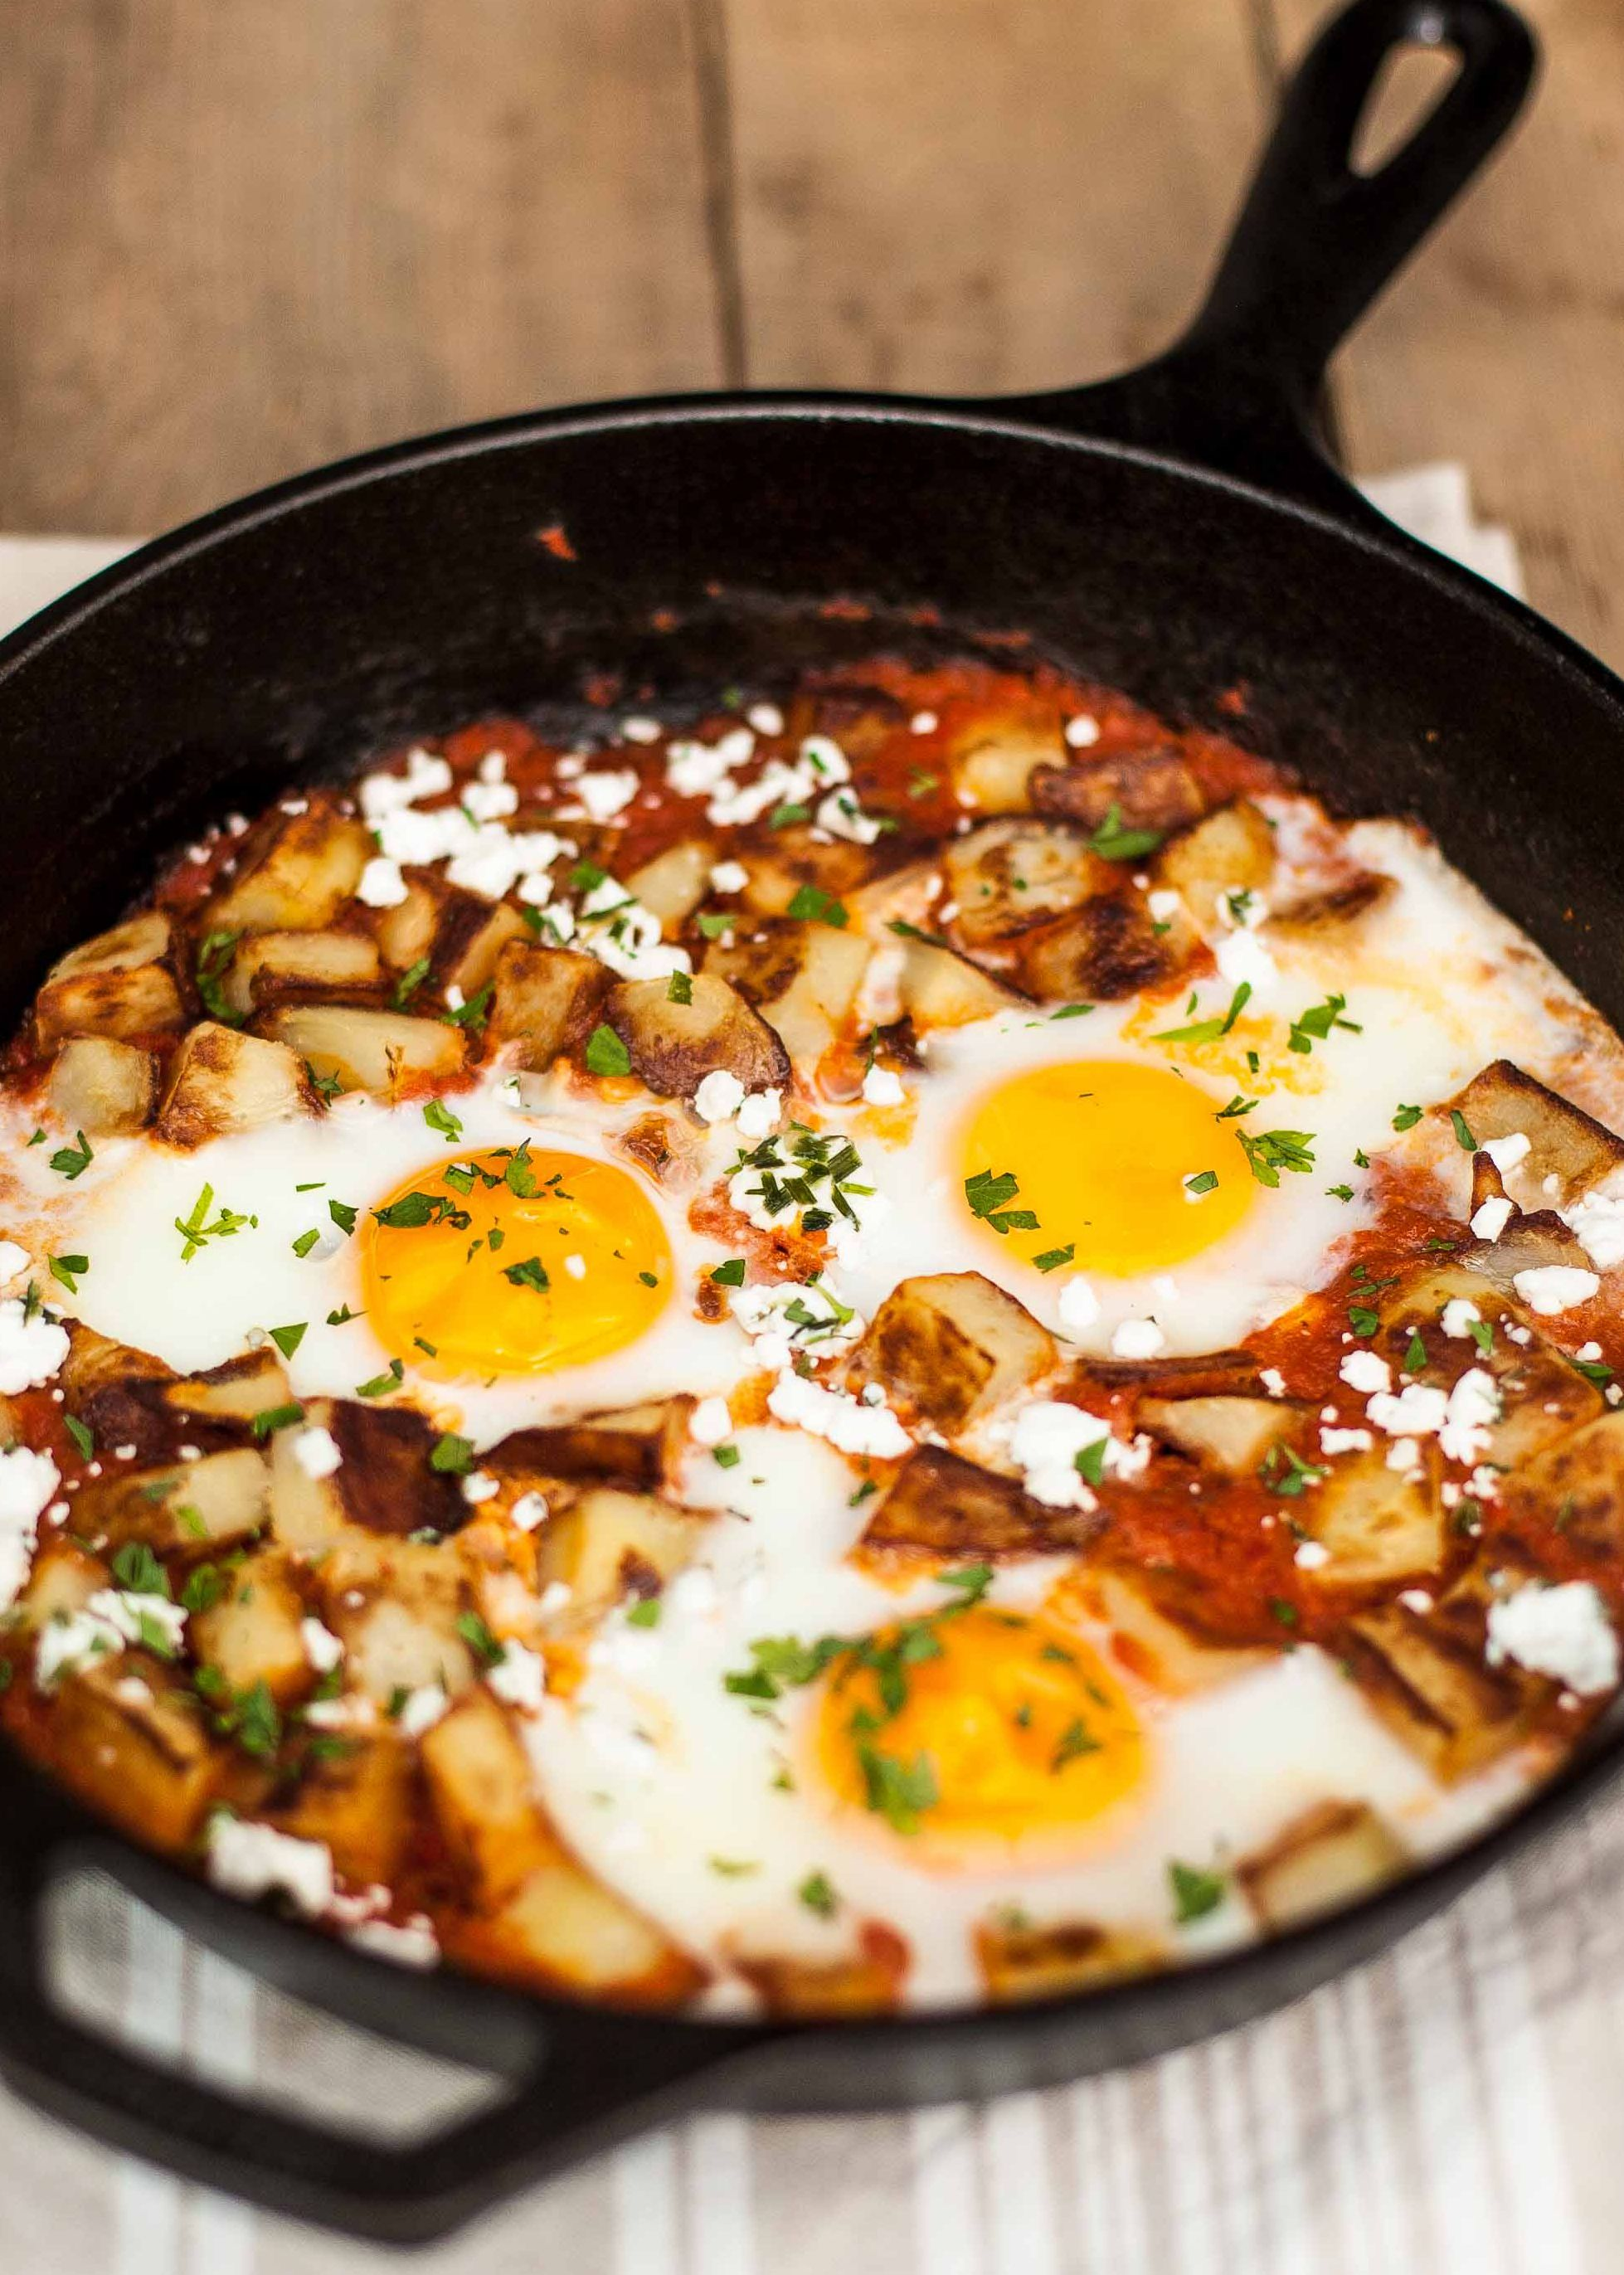 Why Not Serve Eggs For Dinner Fried Potatoes And Eggs Baked In Spicy Tomato Sauce And Topped